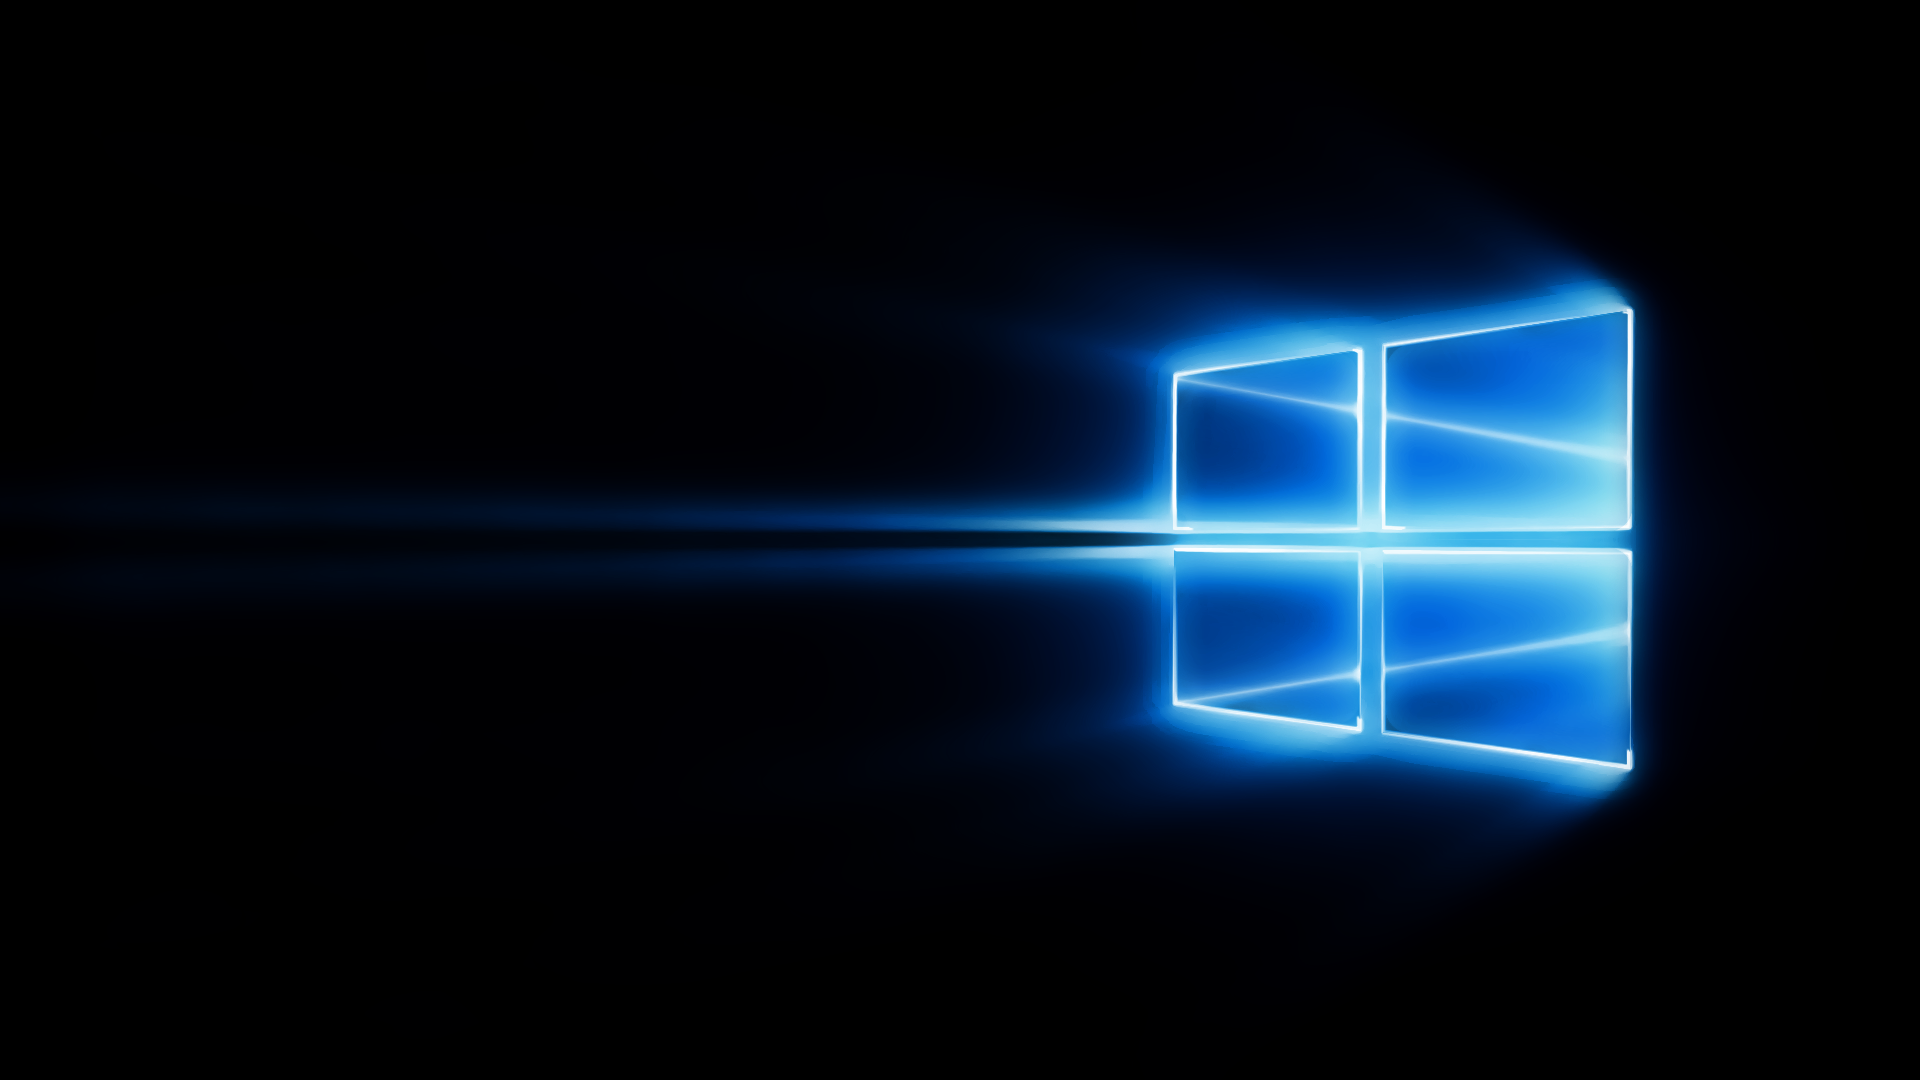 Windows 10 HD Wallpapers - WallpaperSafari Wallpaper Windows 10 Hd